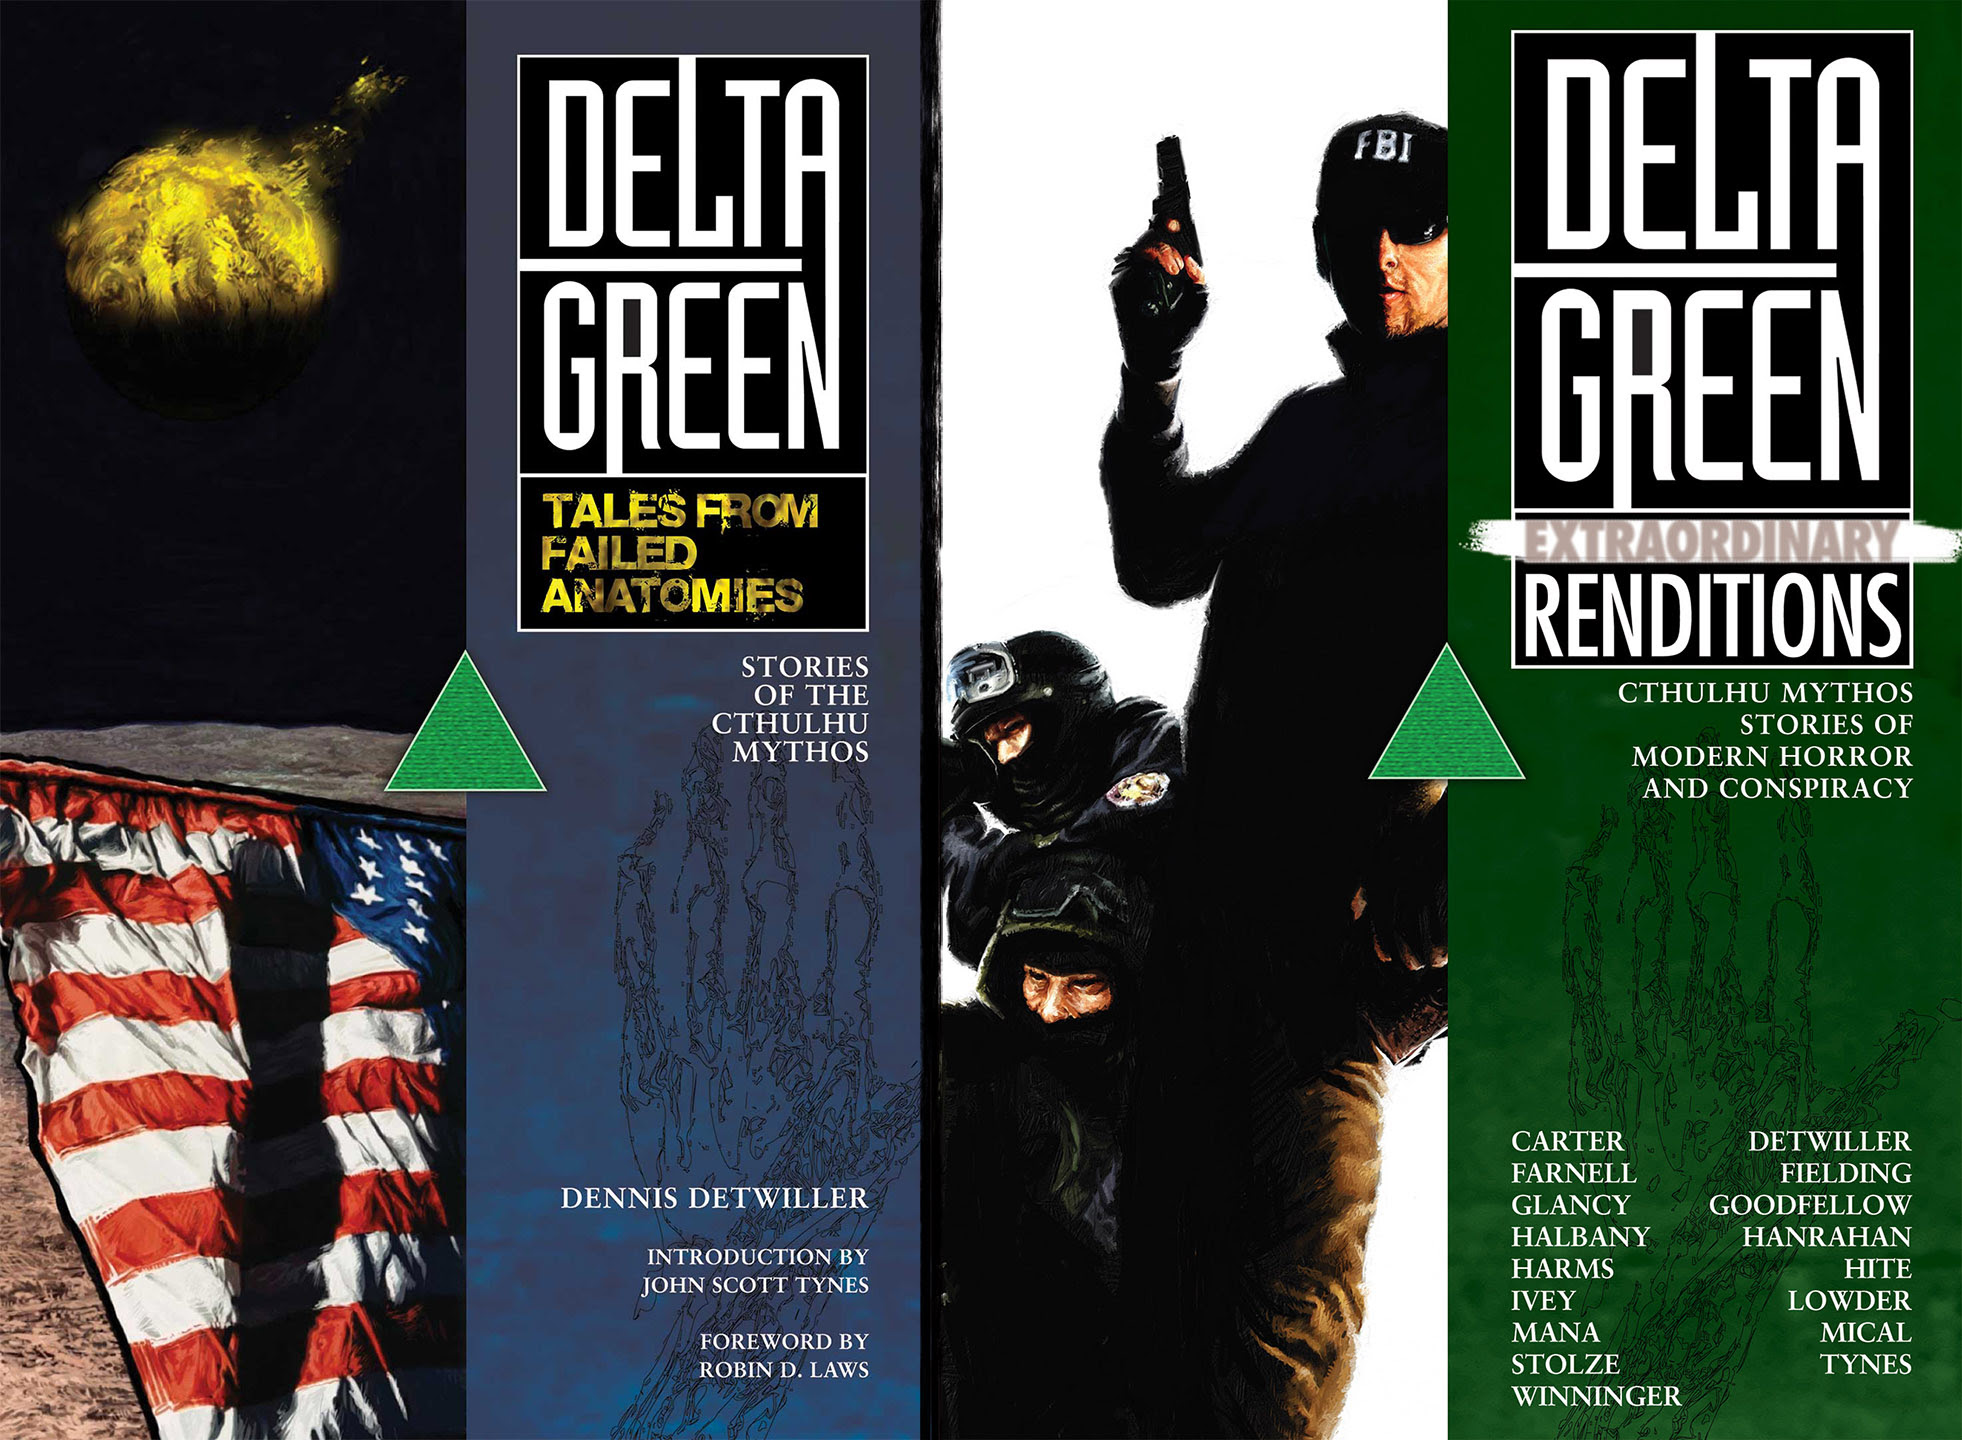 Delta-Green-fiction-covers-Anatomies-Renditions.jpg